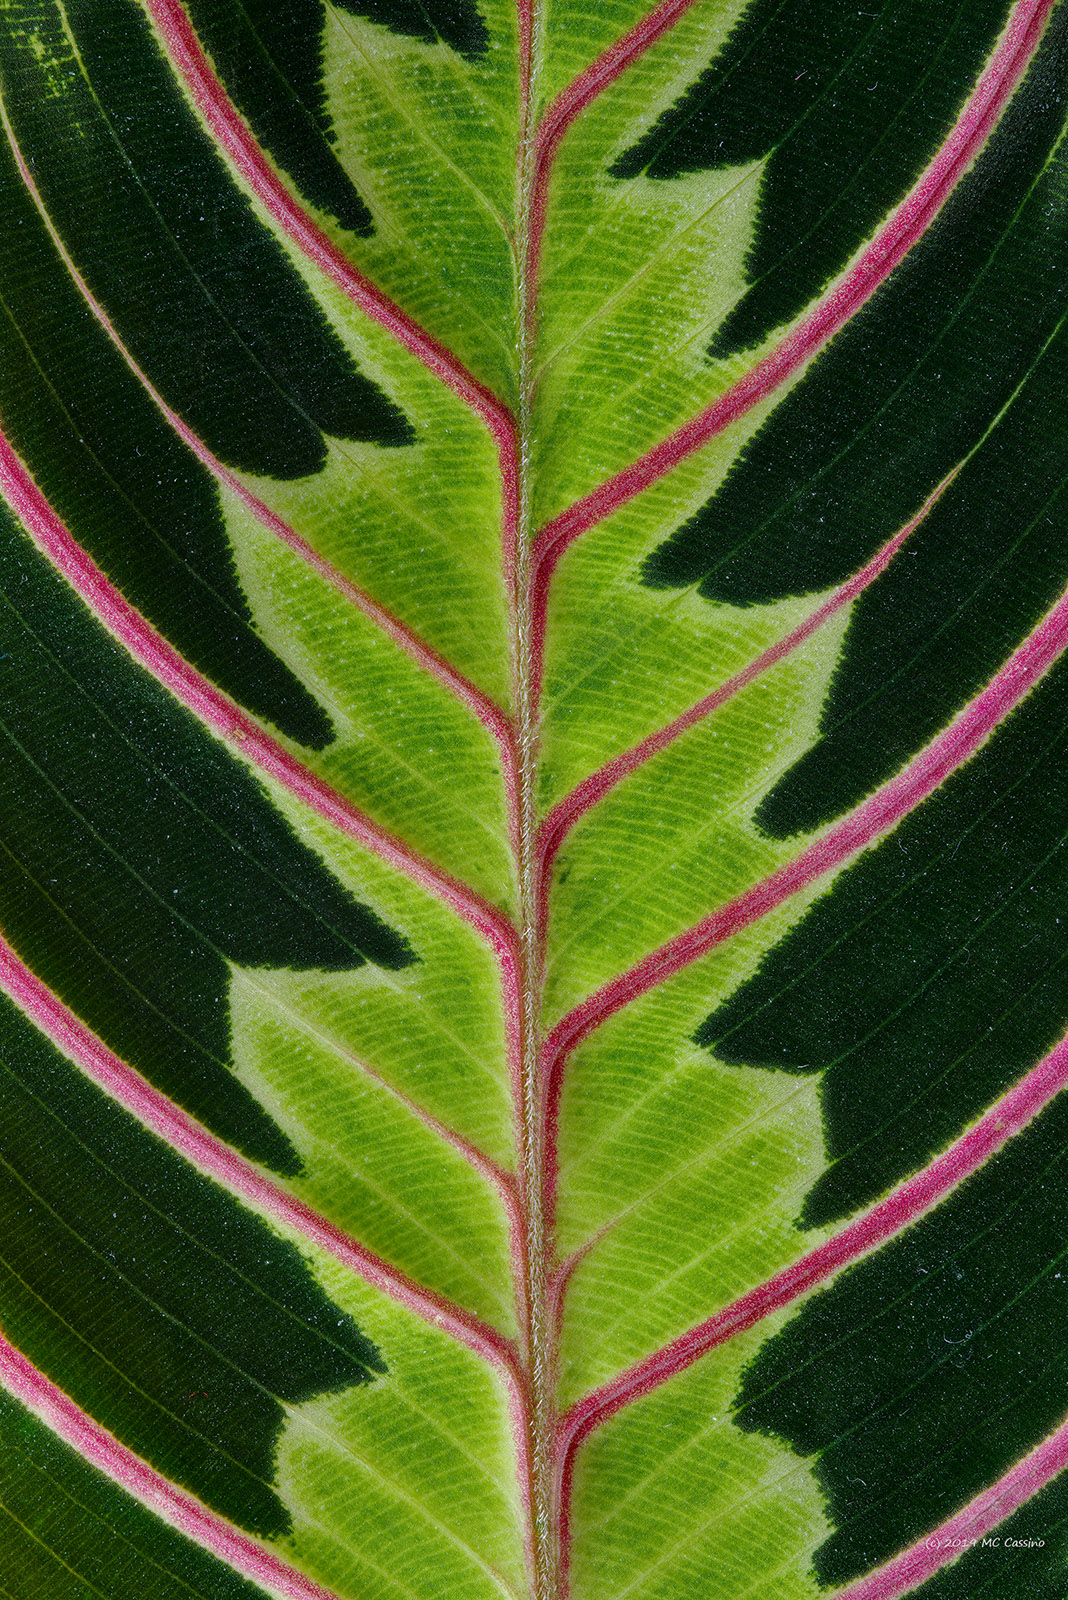 Prayer Plant (Maranta) Leaf Detail